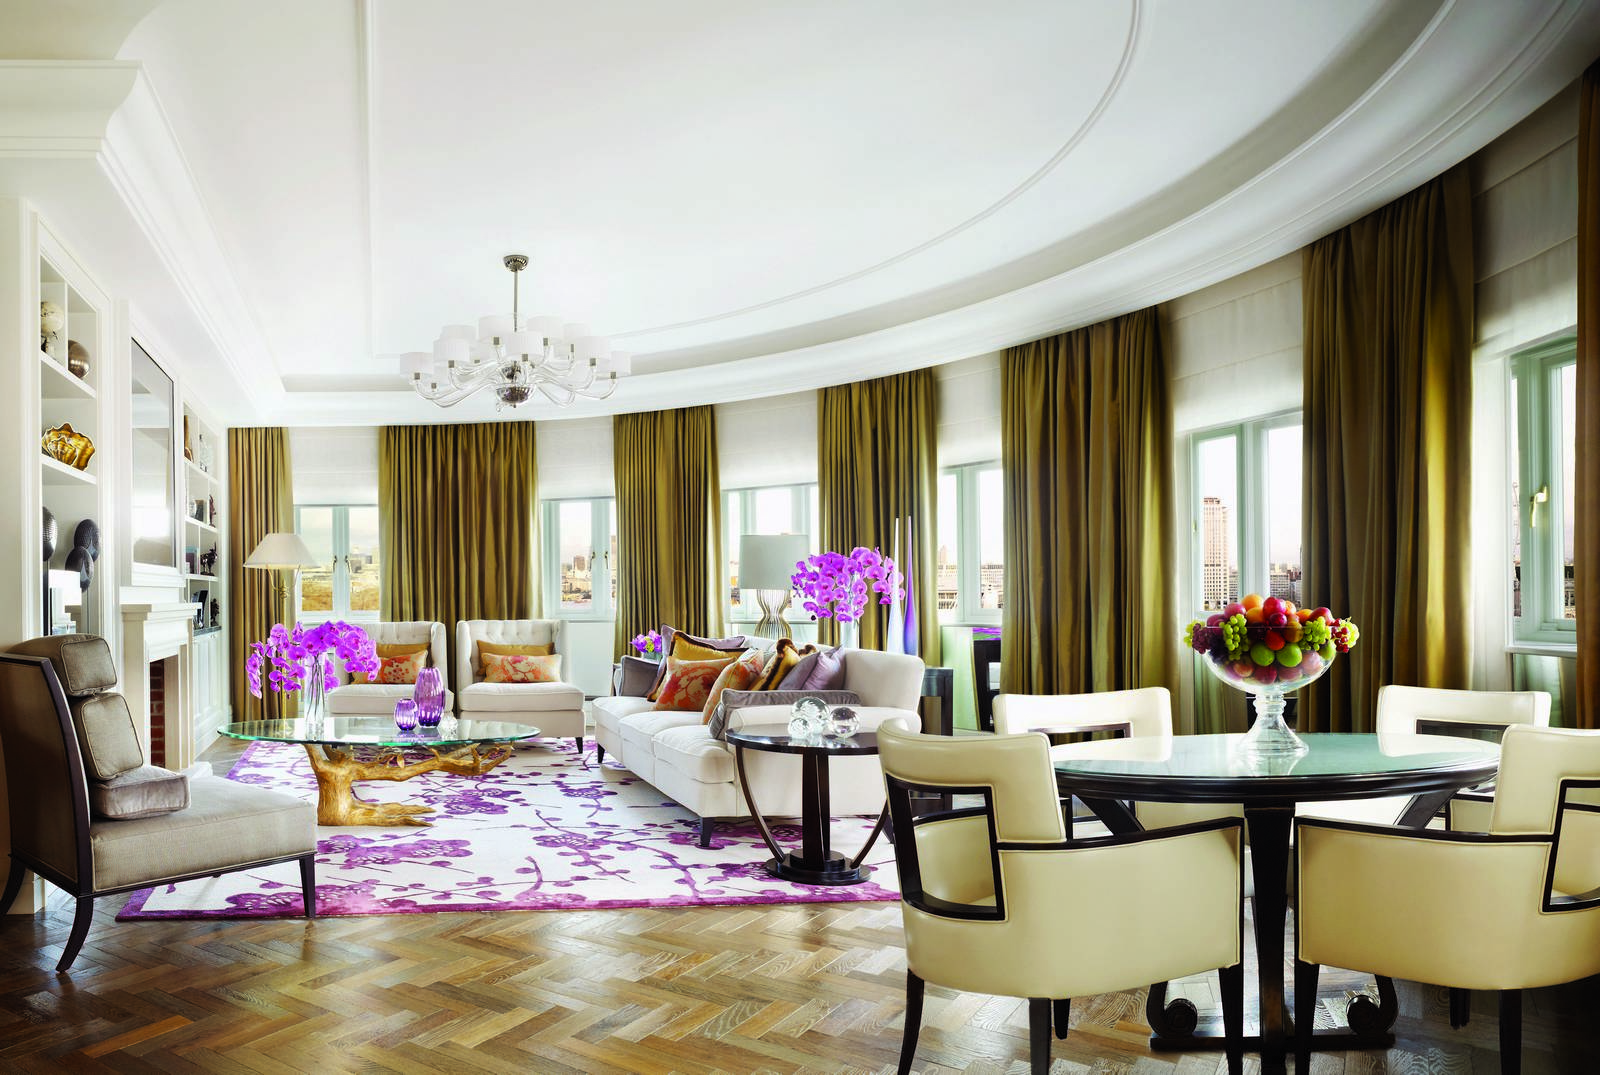 Corinthia hotel london review gtspirit - London hotel suites with 2 bedrooms ...